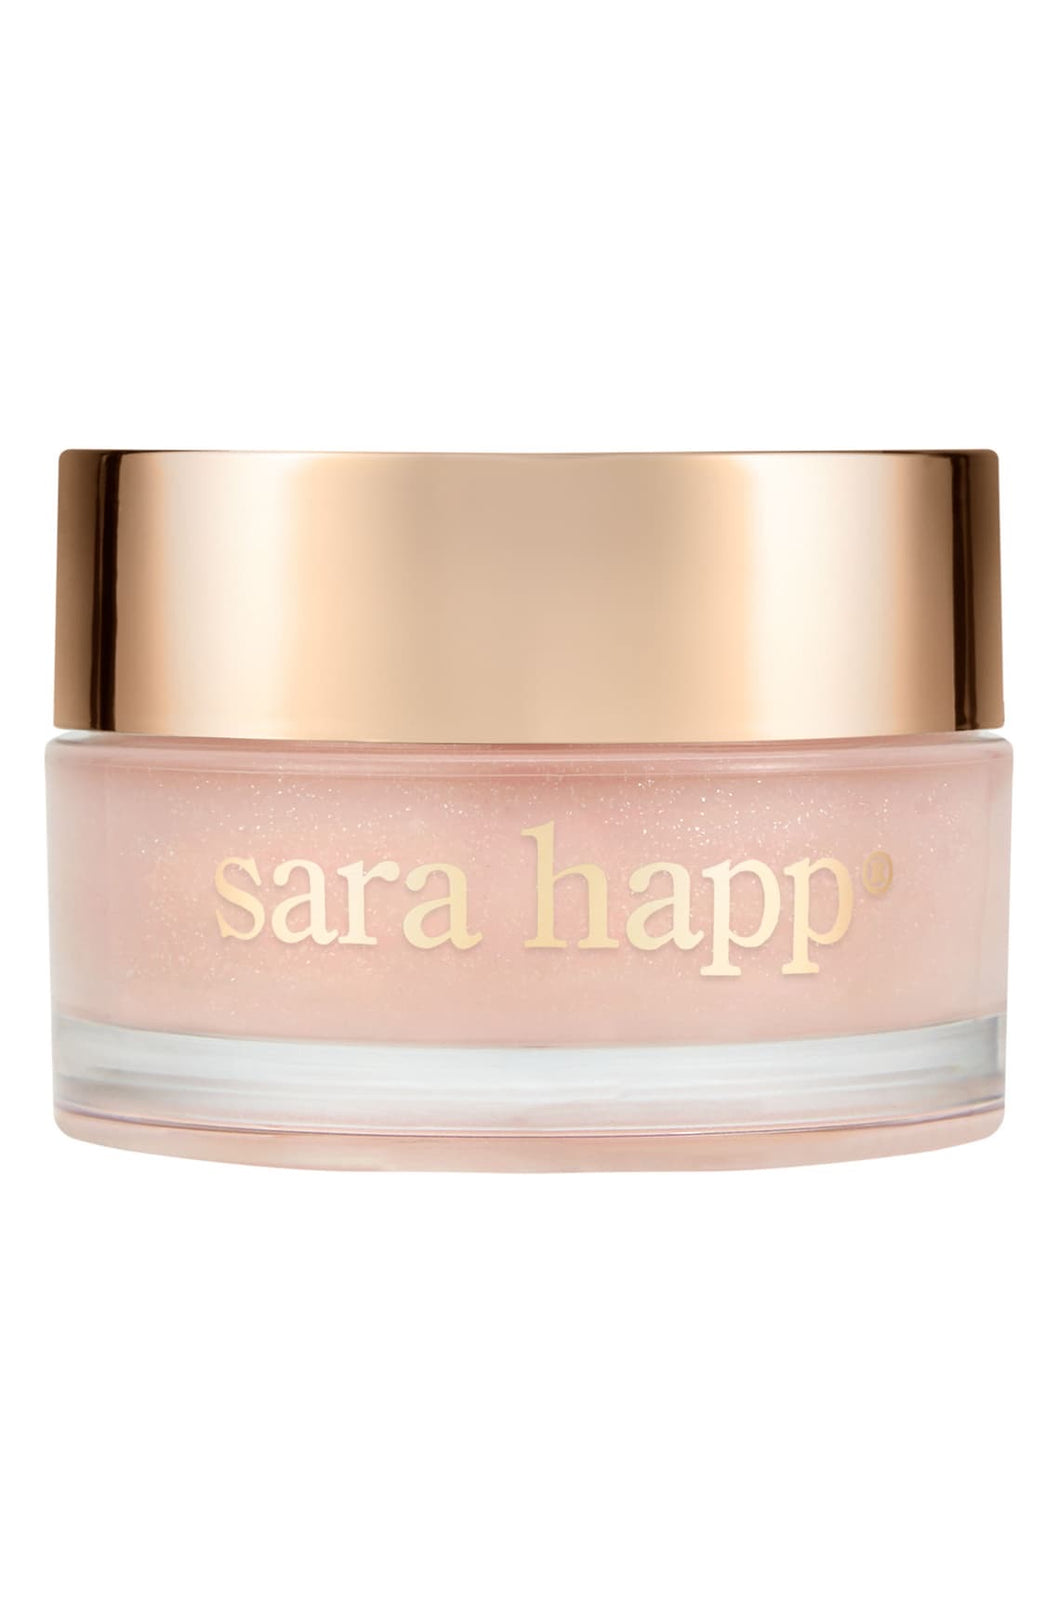 Sara Happ The Lip Slip | One Luxe Gloss Balm